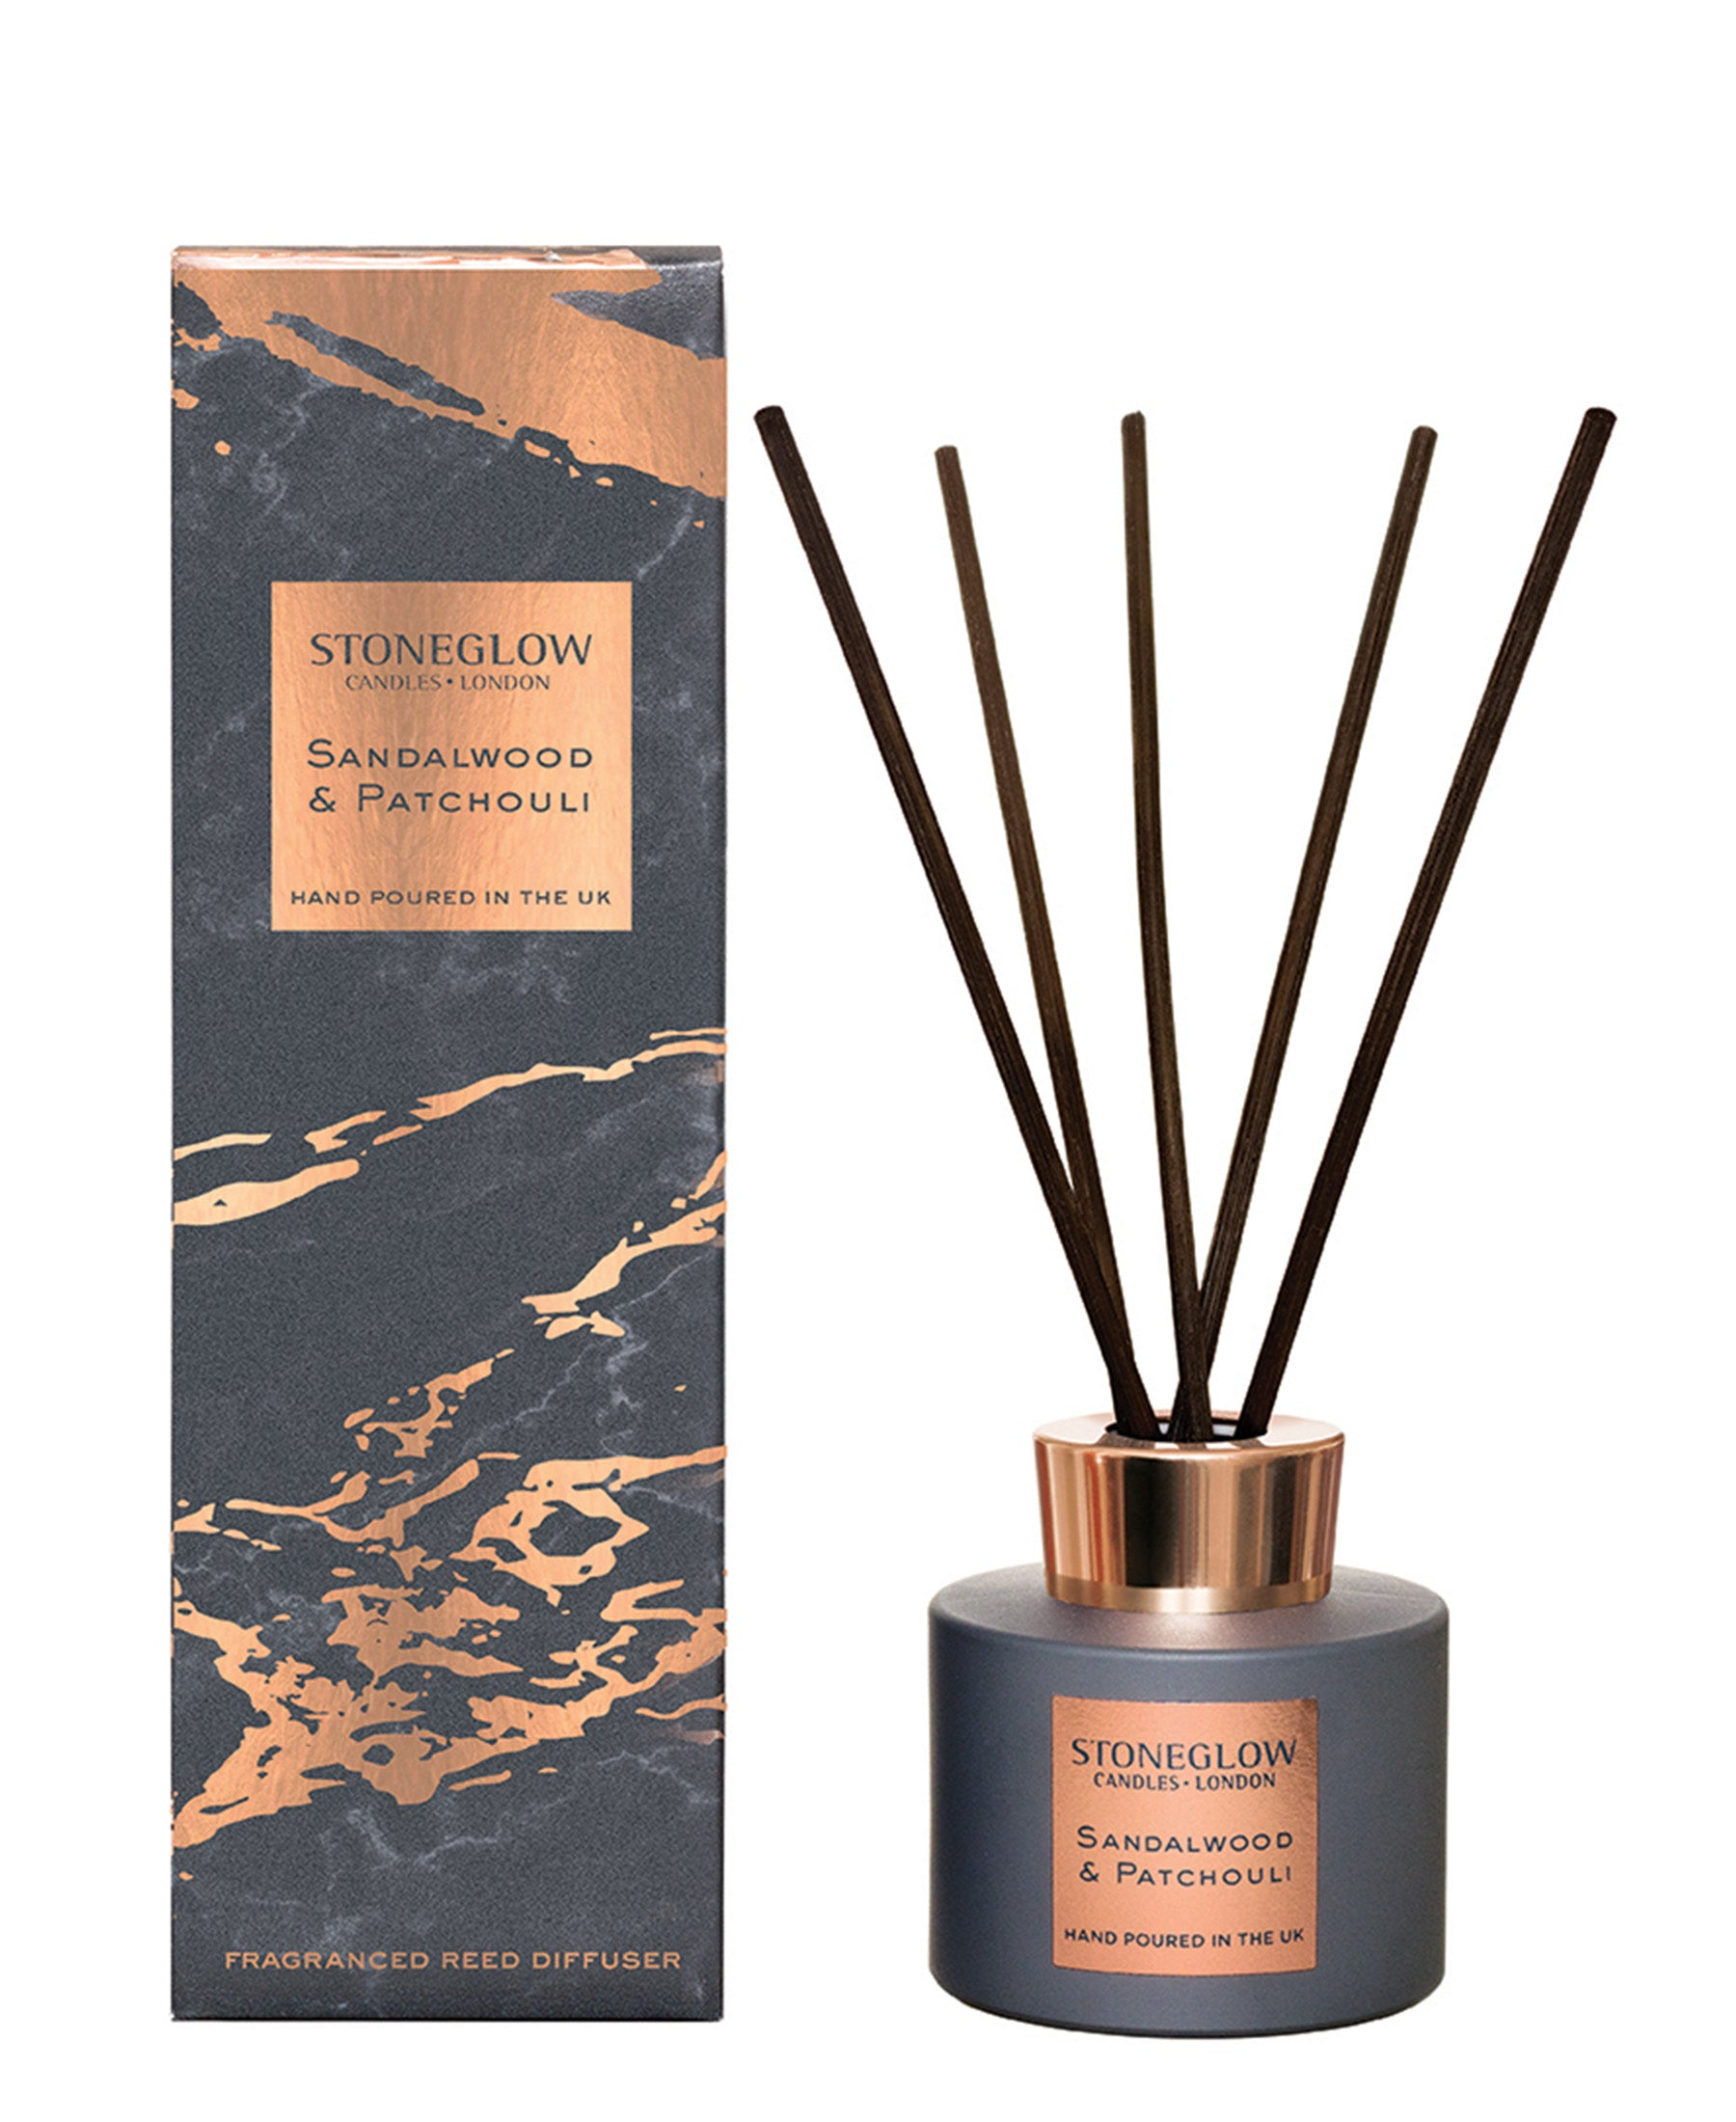 Stoneglow Sandalwood & Patchouli Diffuser